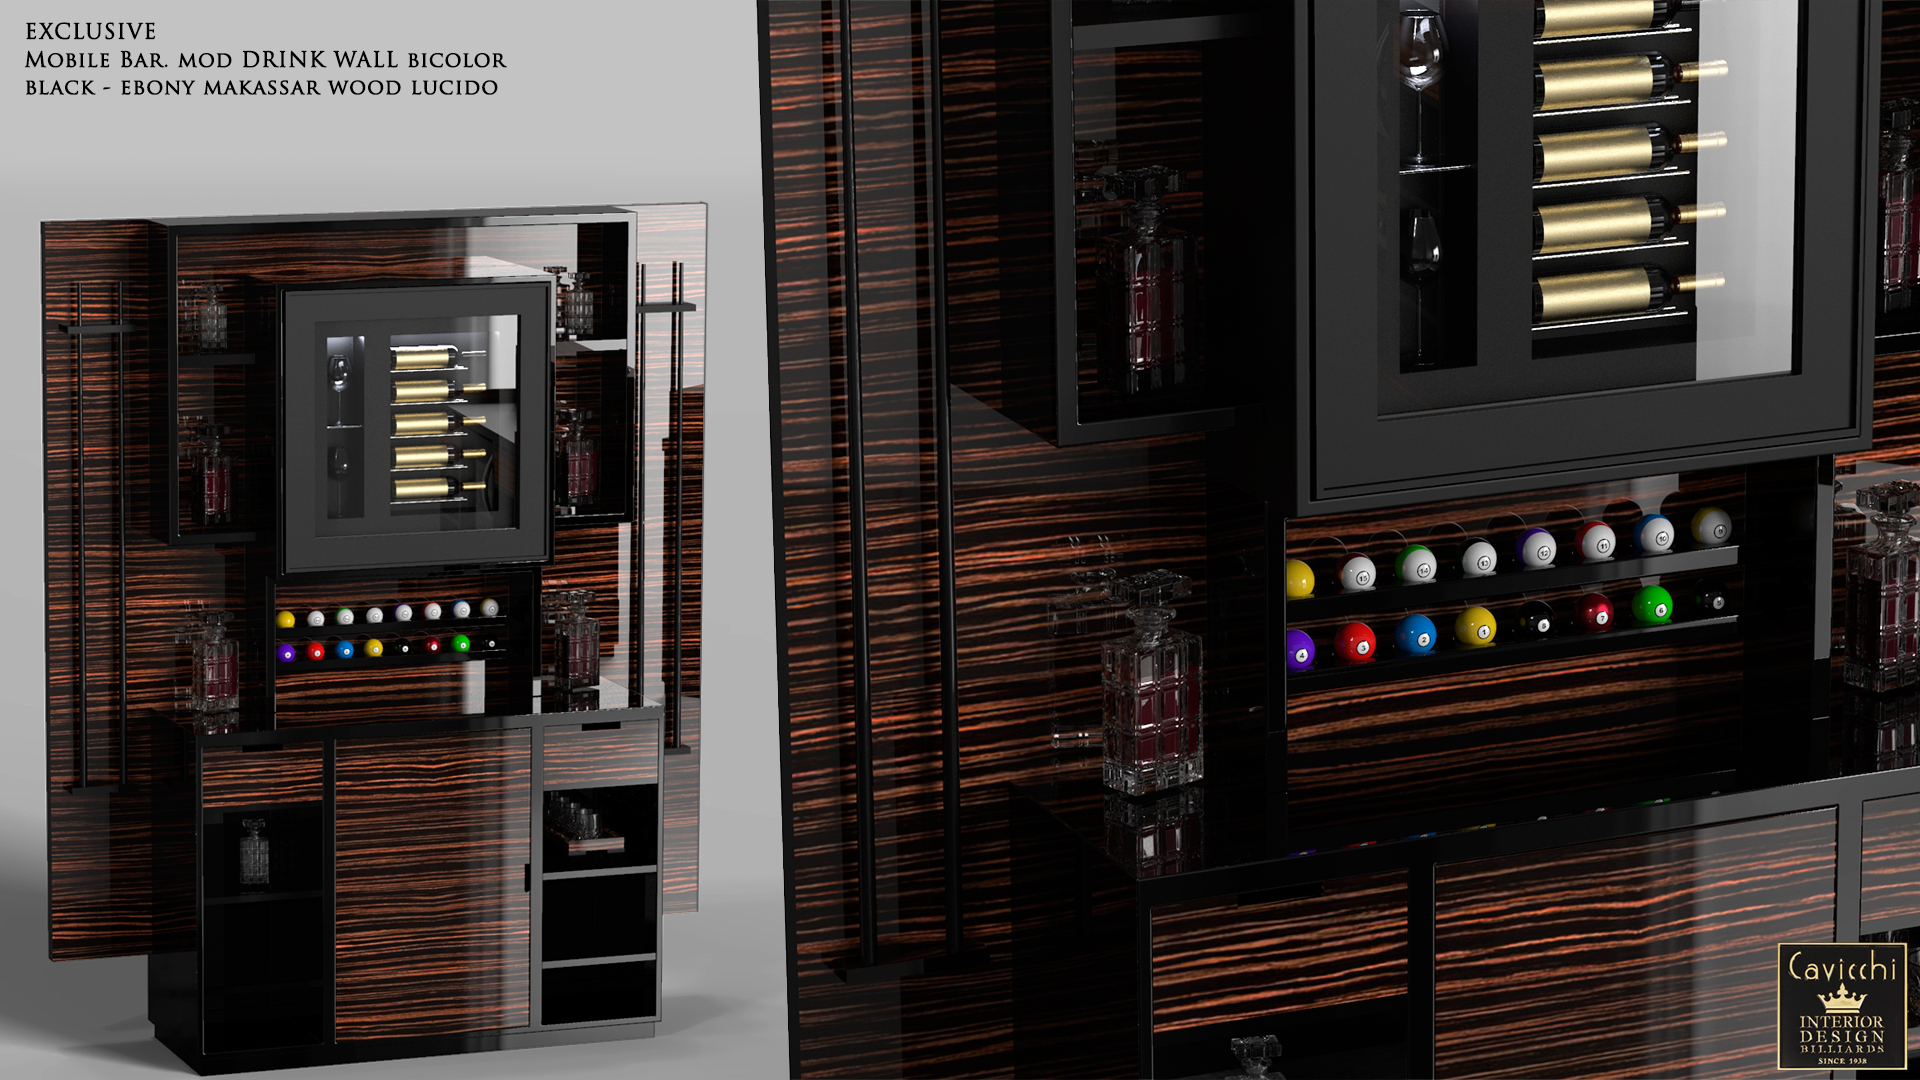 EXCLUSIVE MOBILE BAR DRINK WALL 2